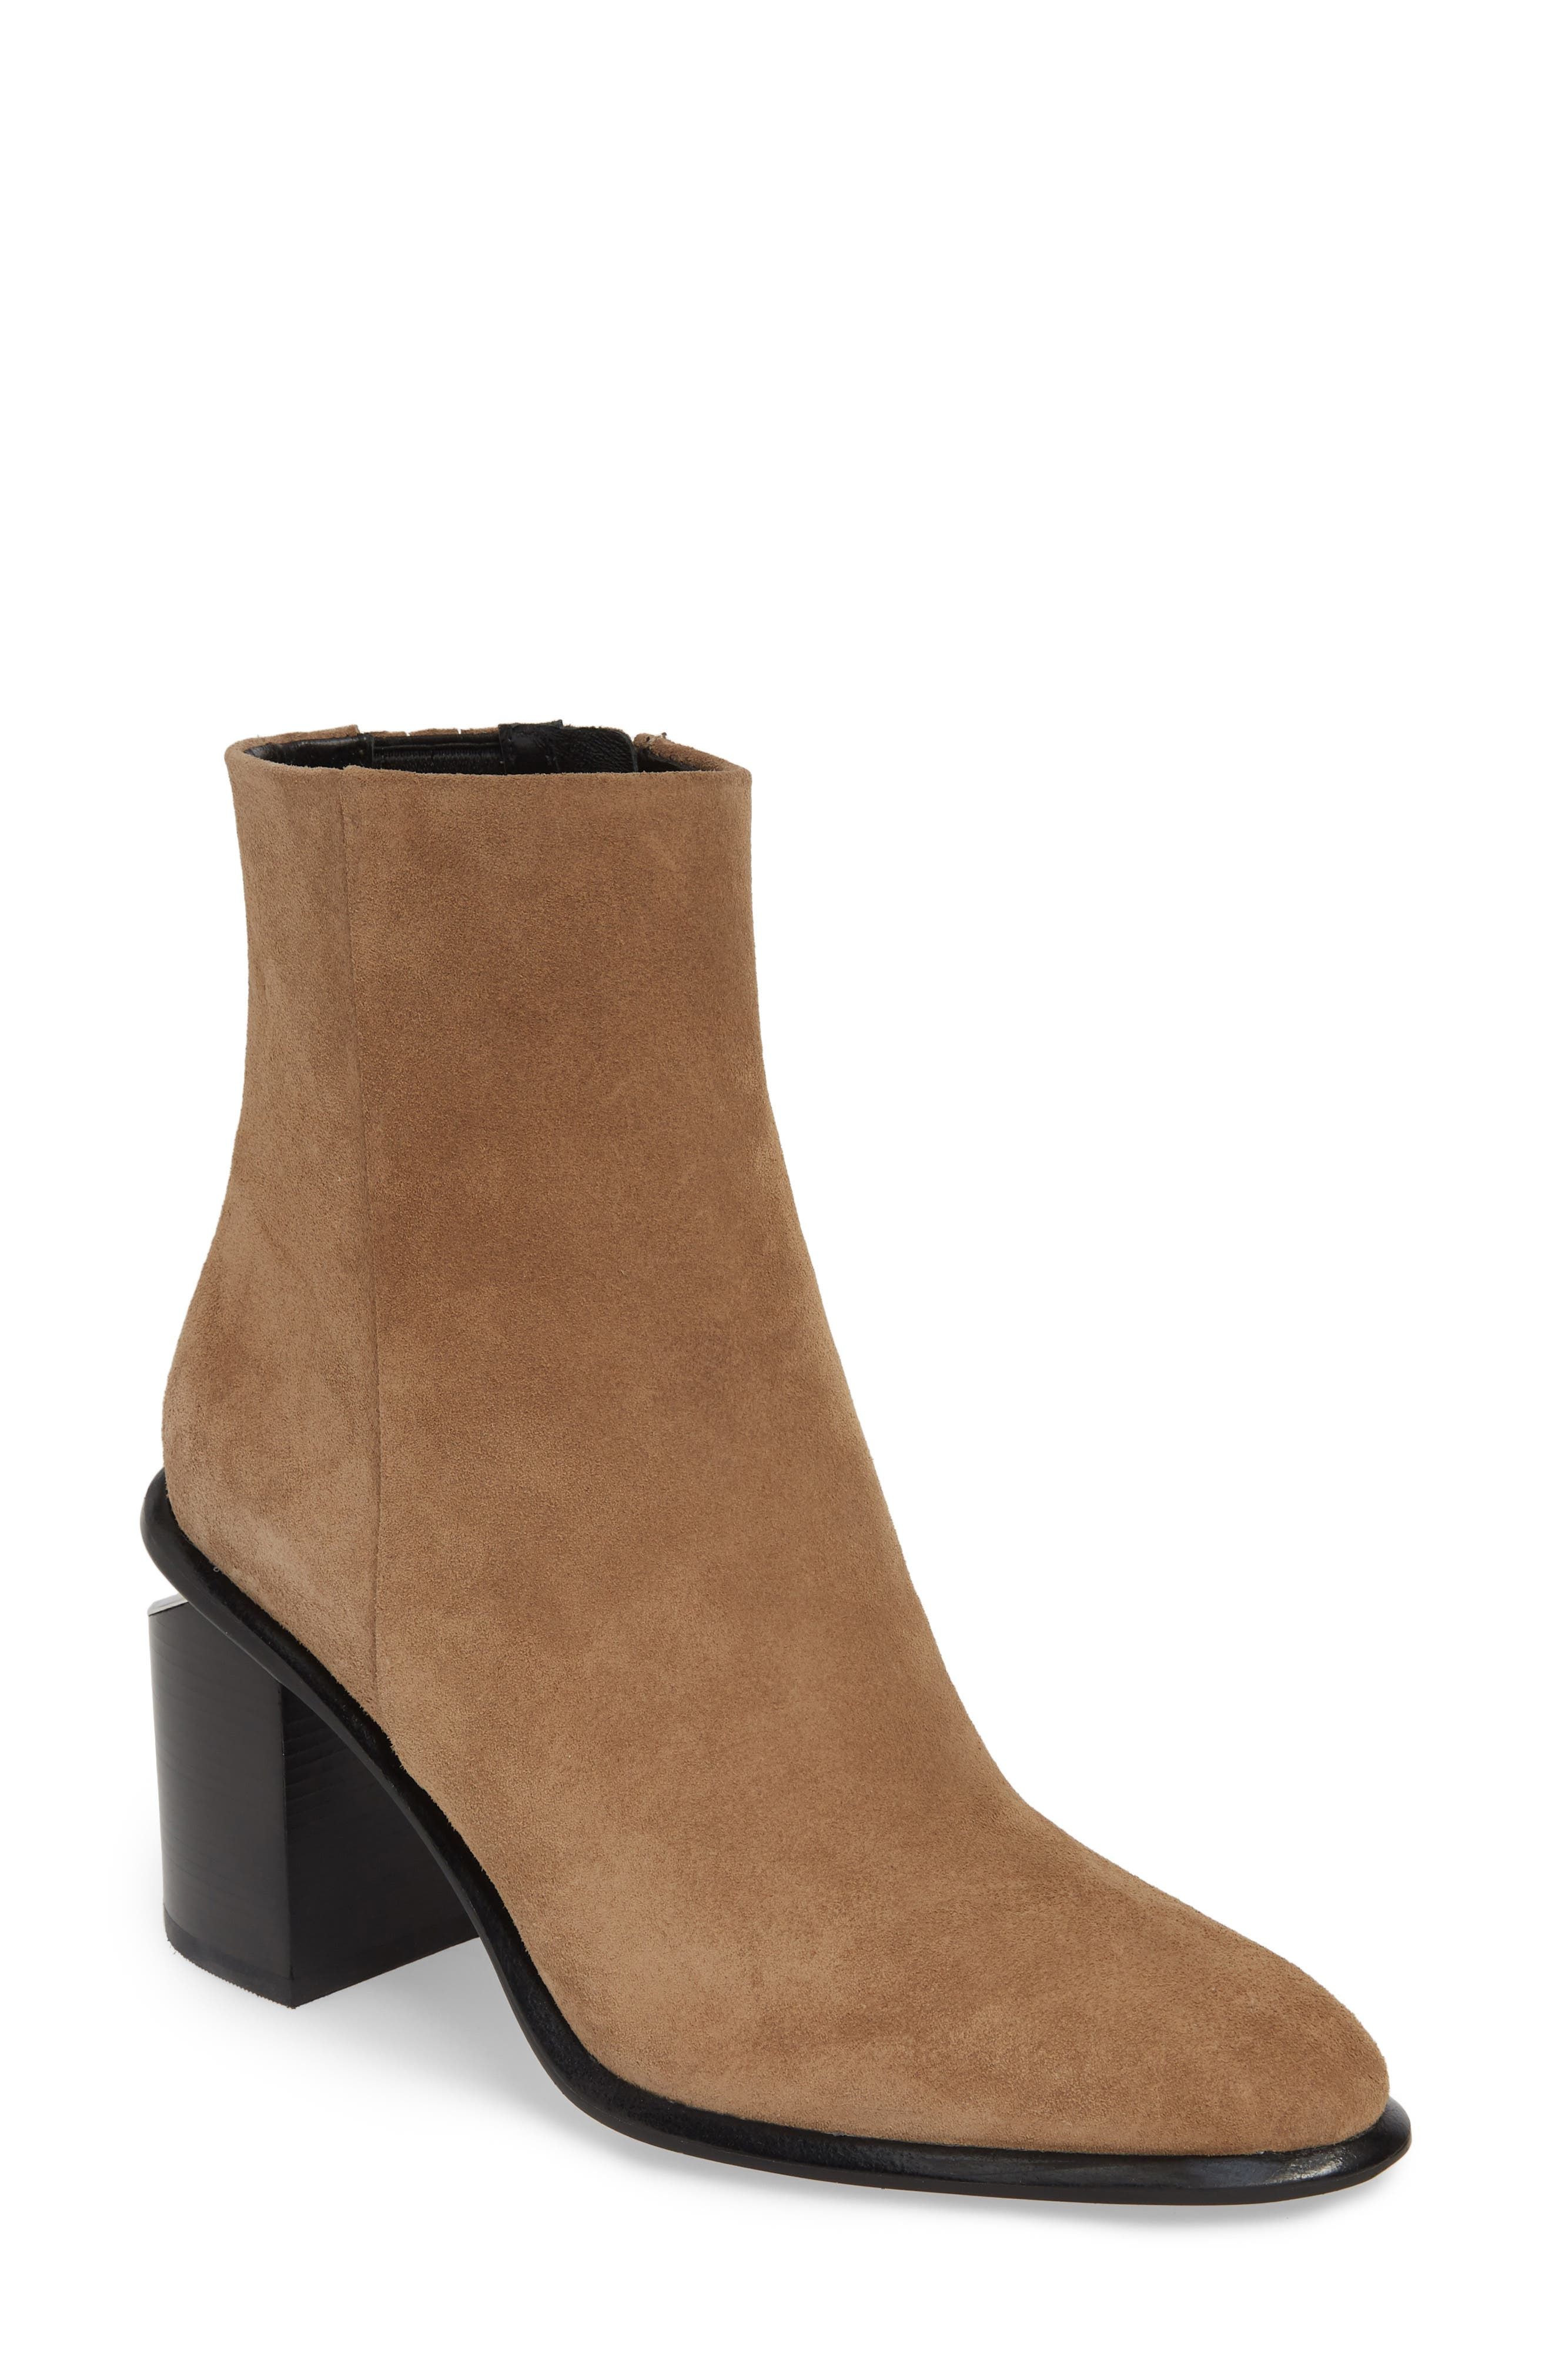 ALEXANDER WANG Anna Mid Bootie, Main, color, SAND SUEDE